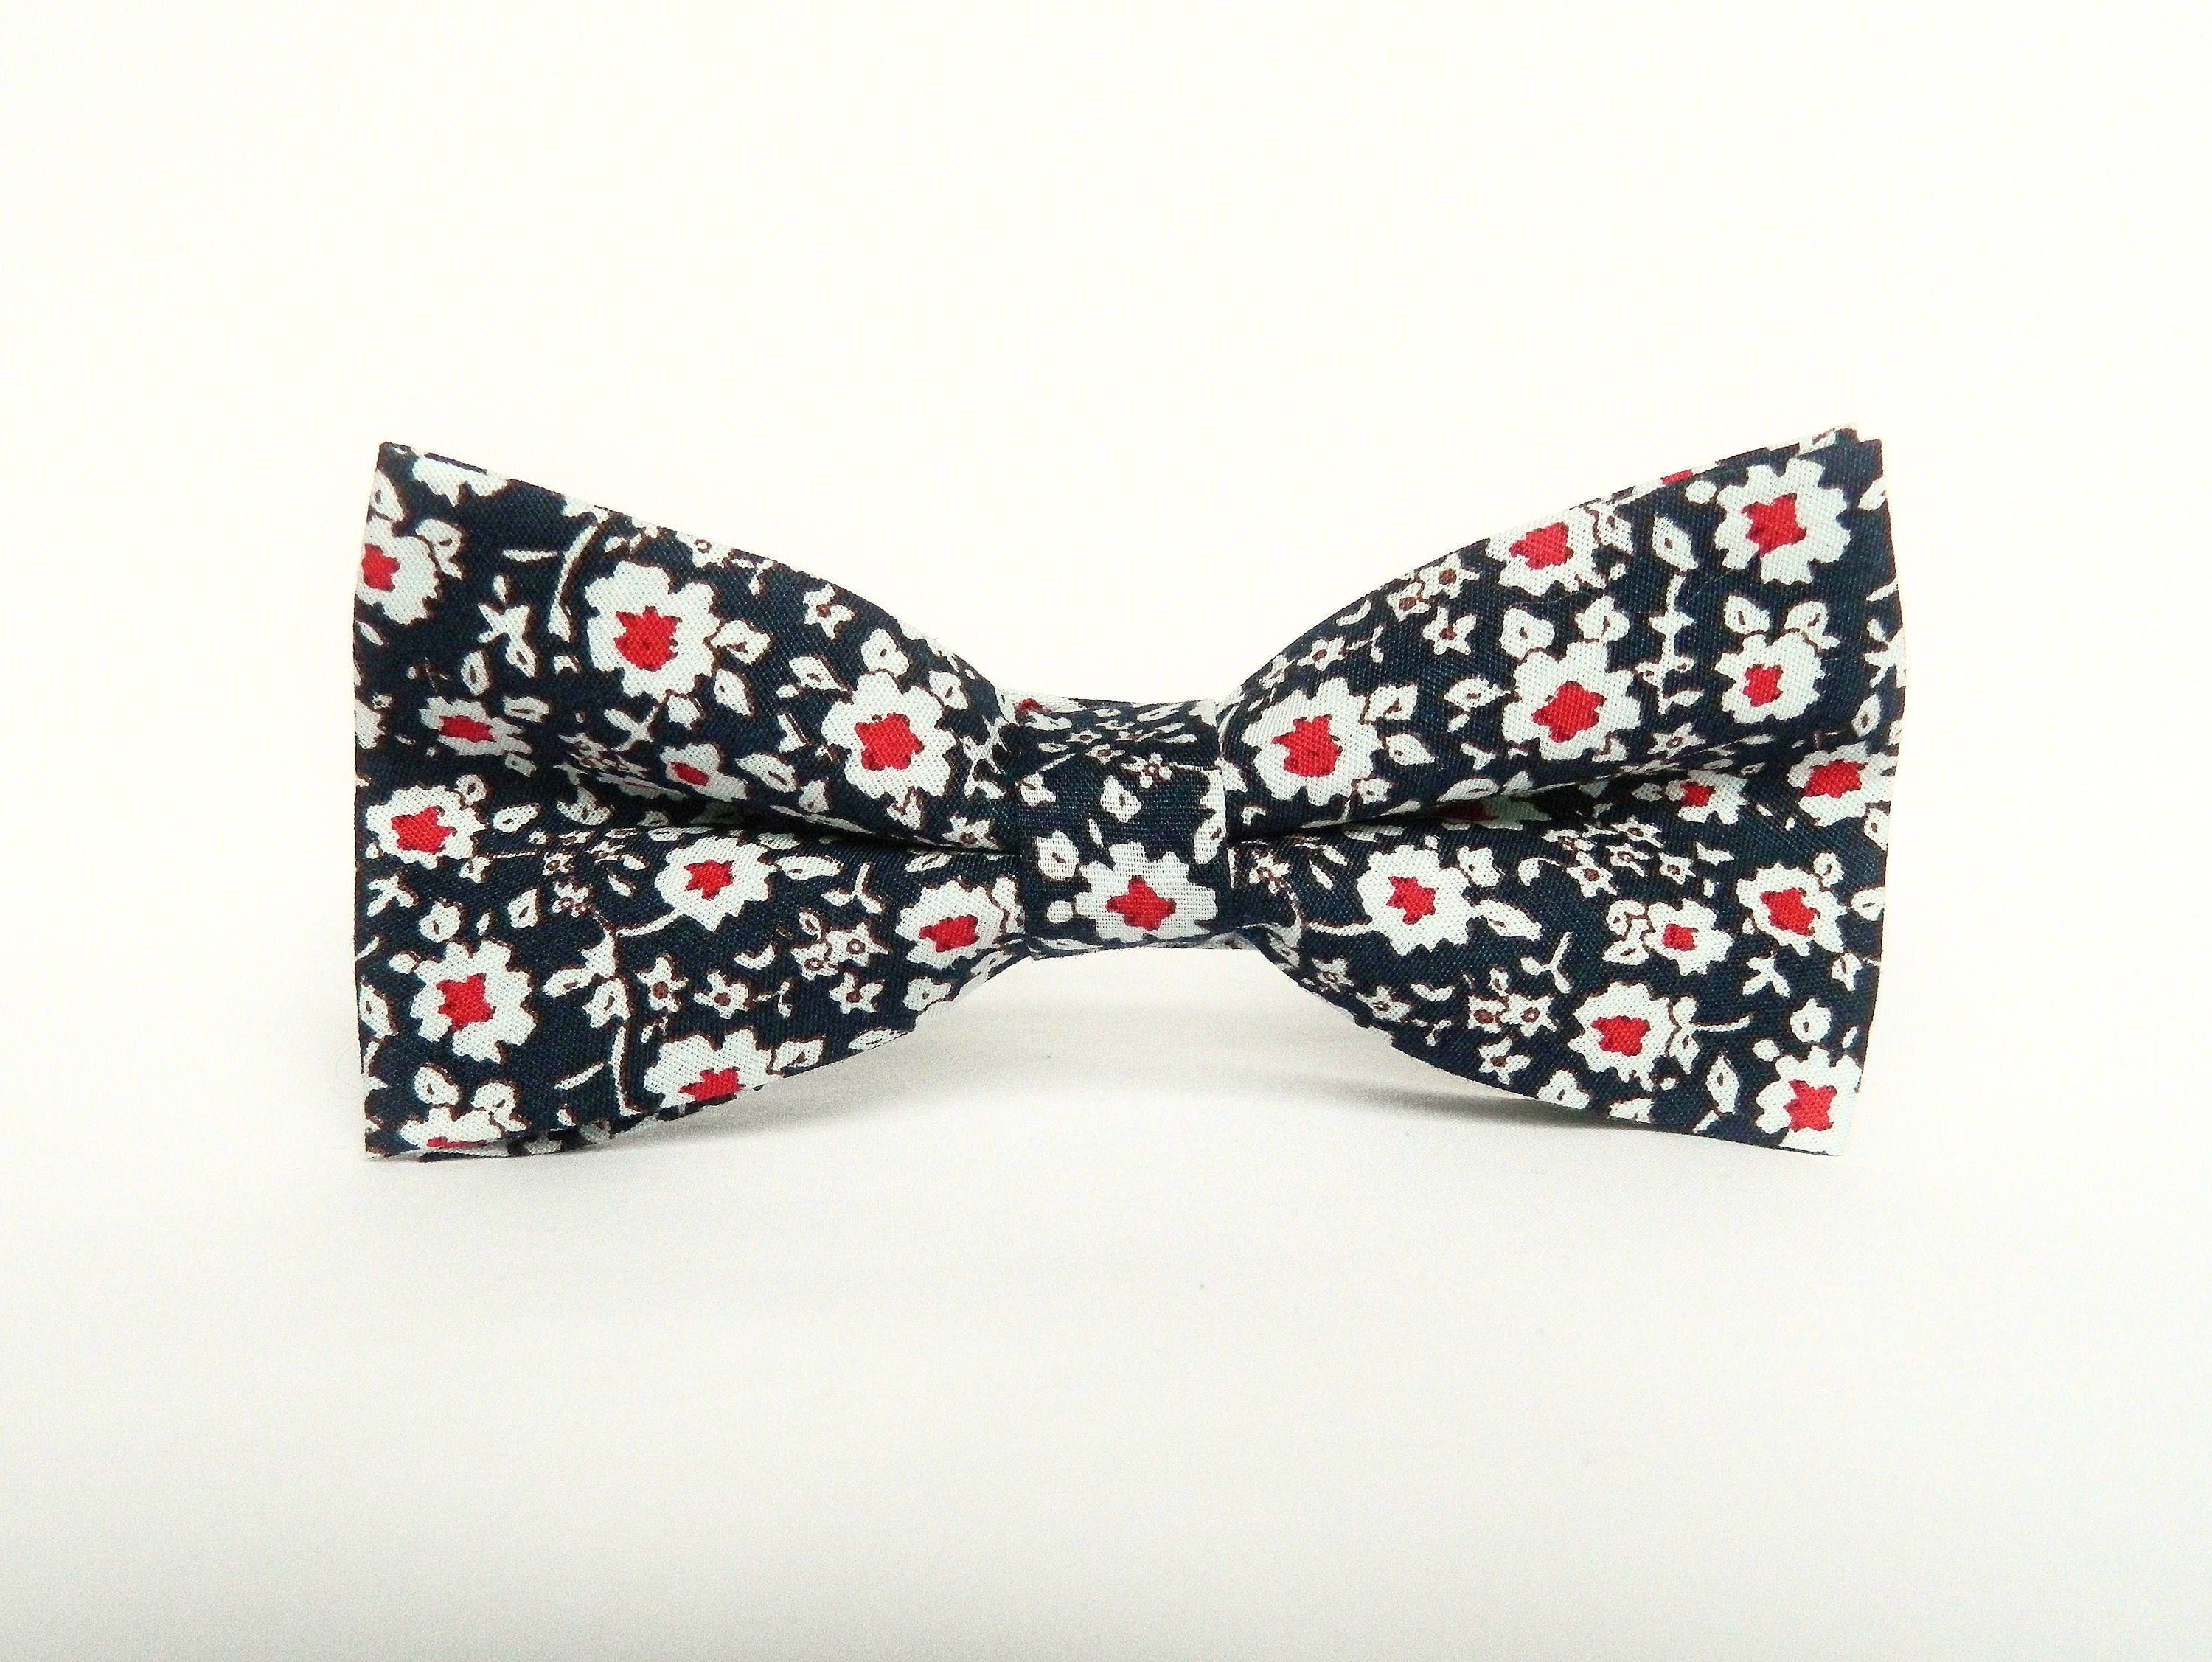 Red Daisy Navy Blue Floral Bow Tie Floral Pre Tied Bow Tie Wedding Red Navy Floral Bow Tie Gift For Men Groomsmen Uk Tie Gifts Red Wedding Floral Bow Tie